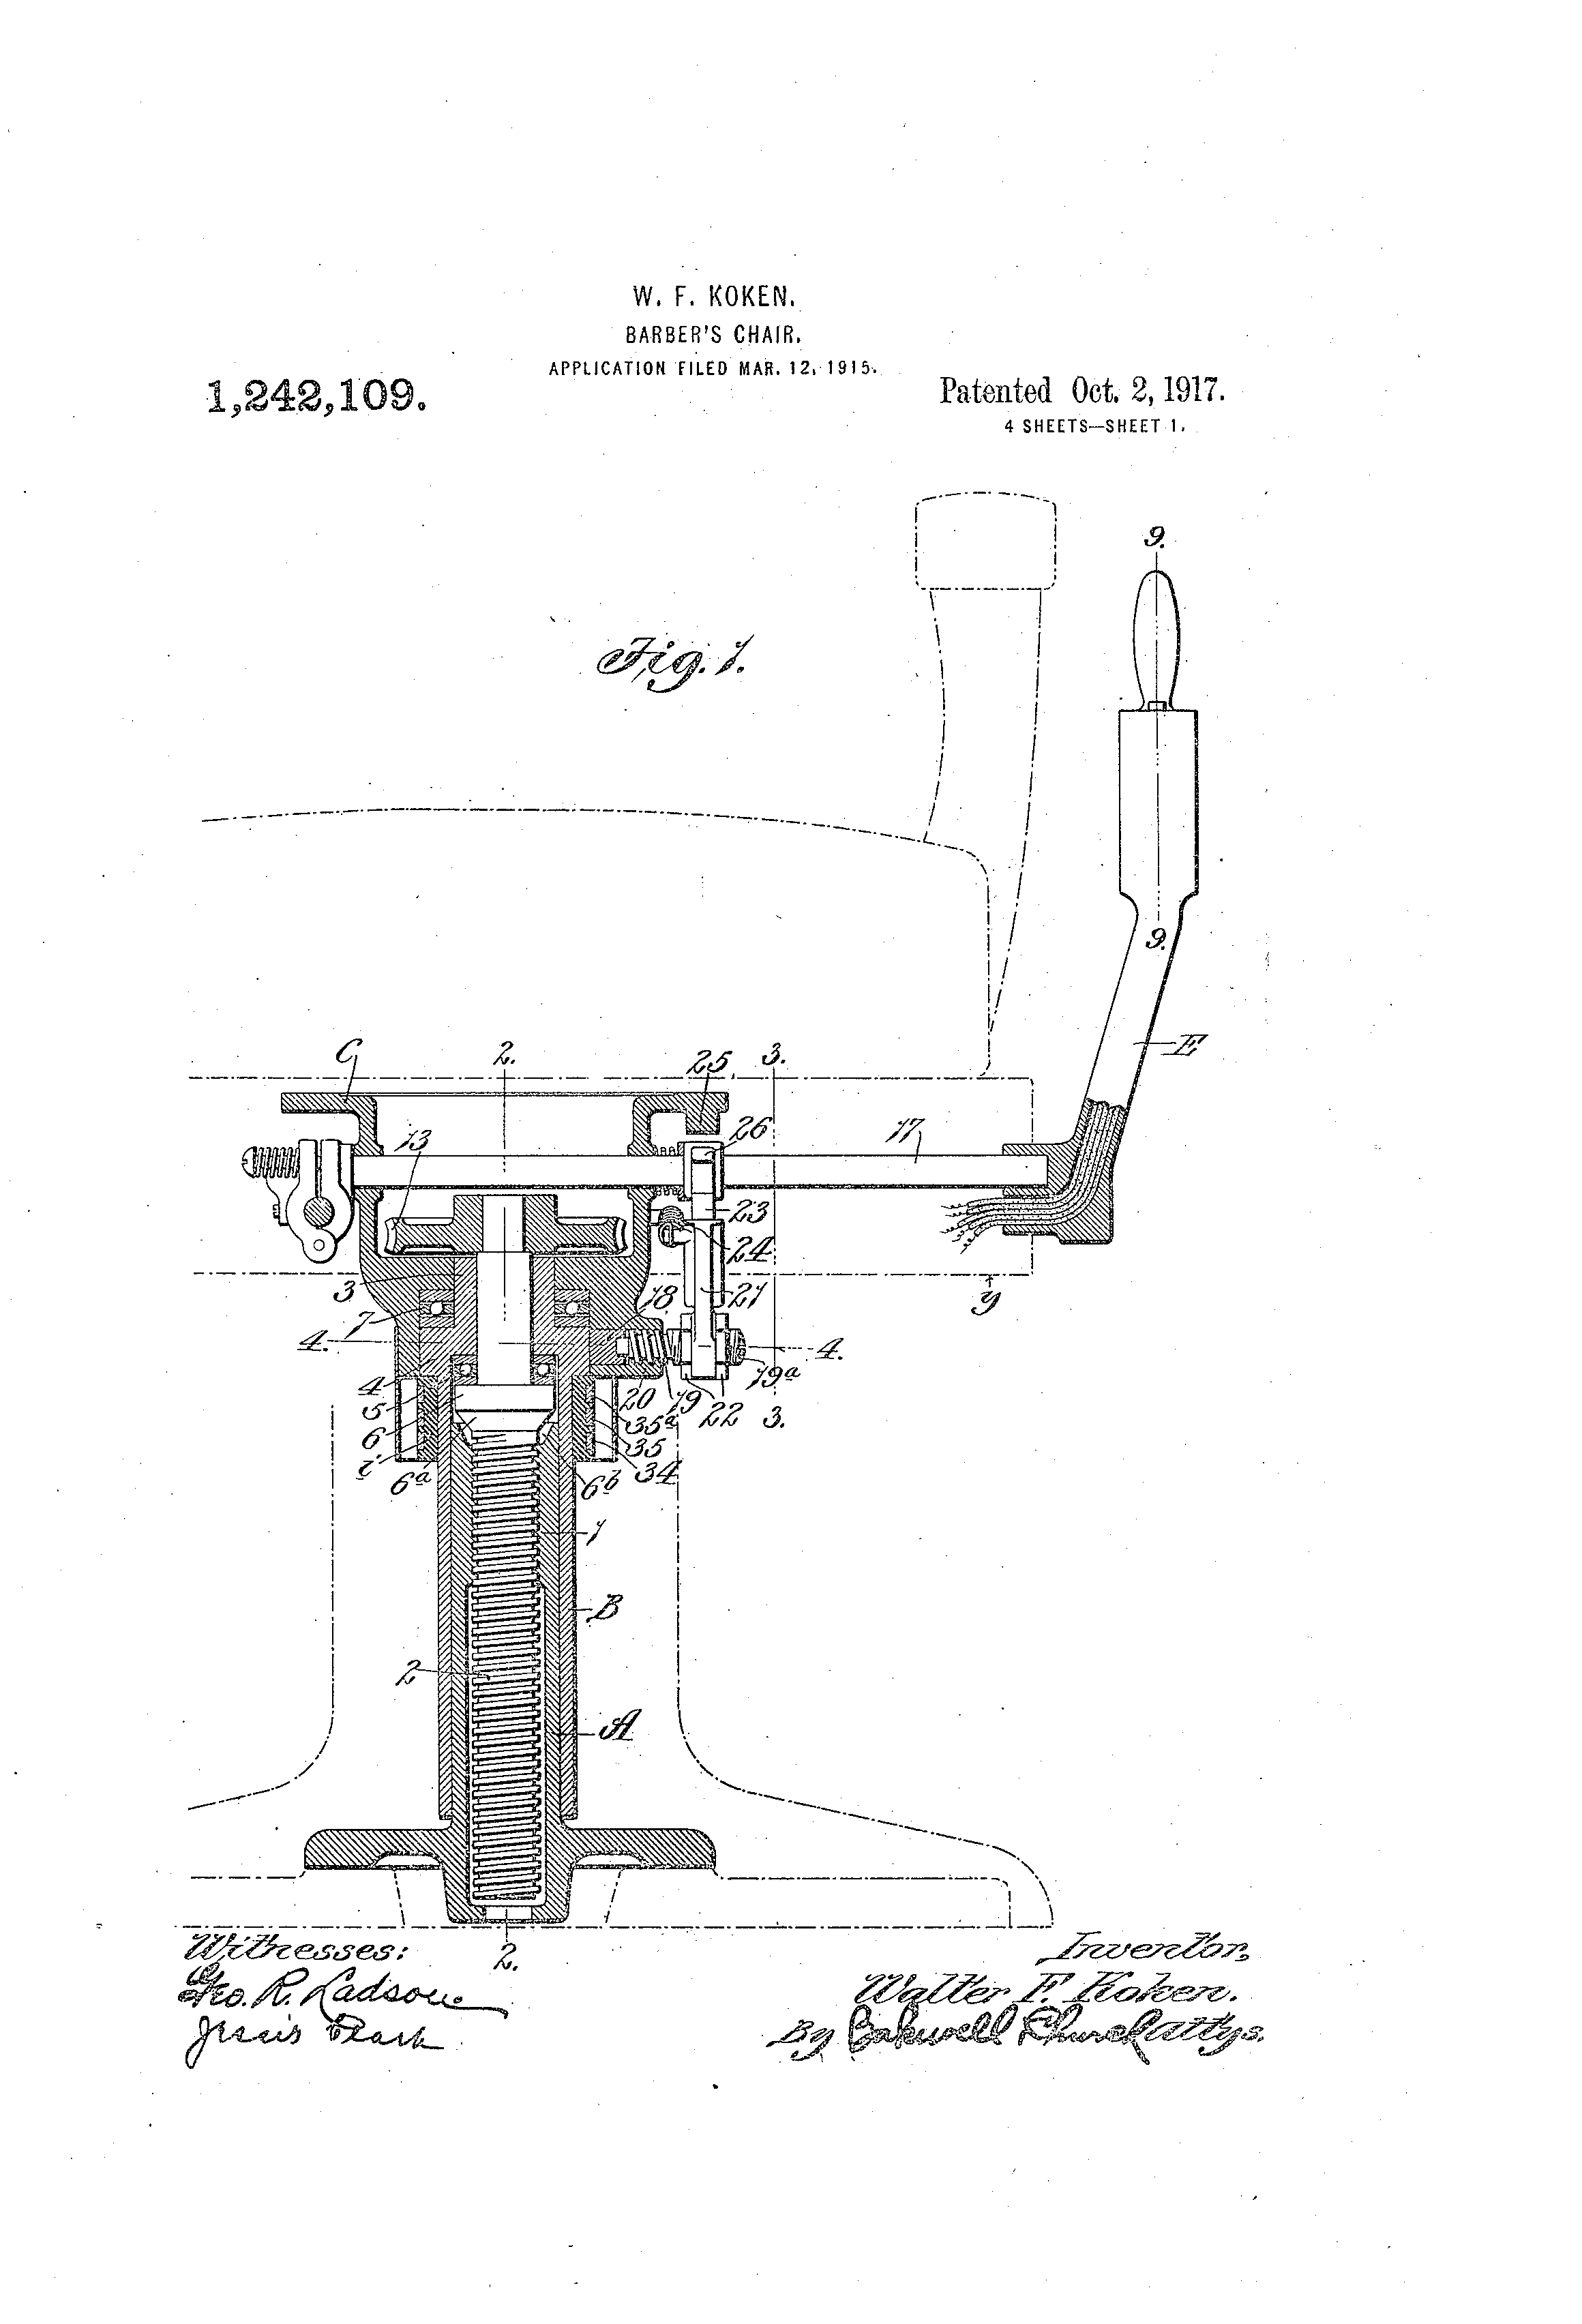 Barber chairs drawing - Patent Drawing